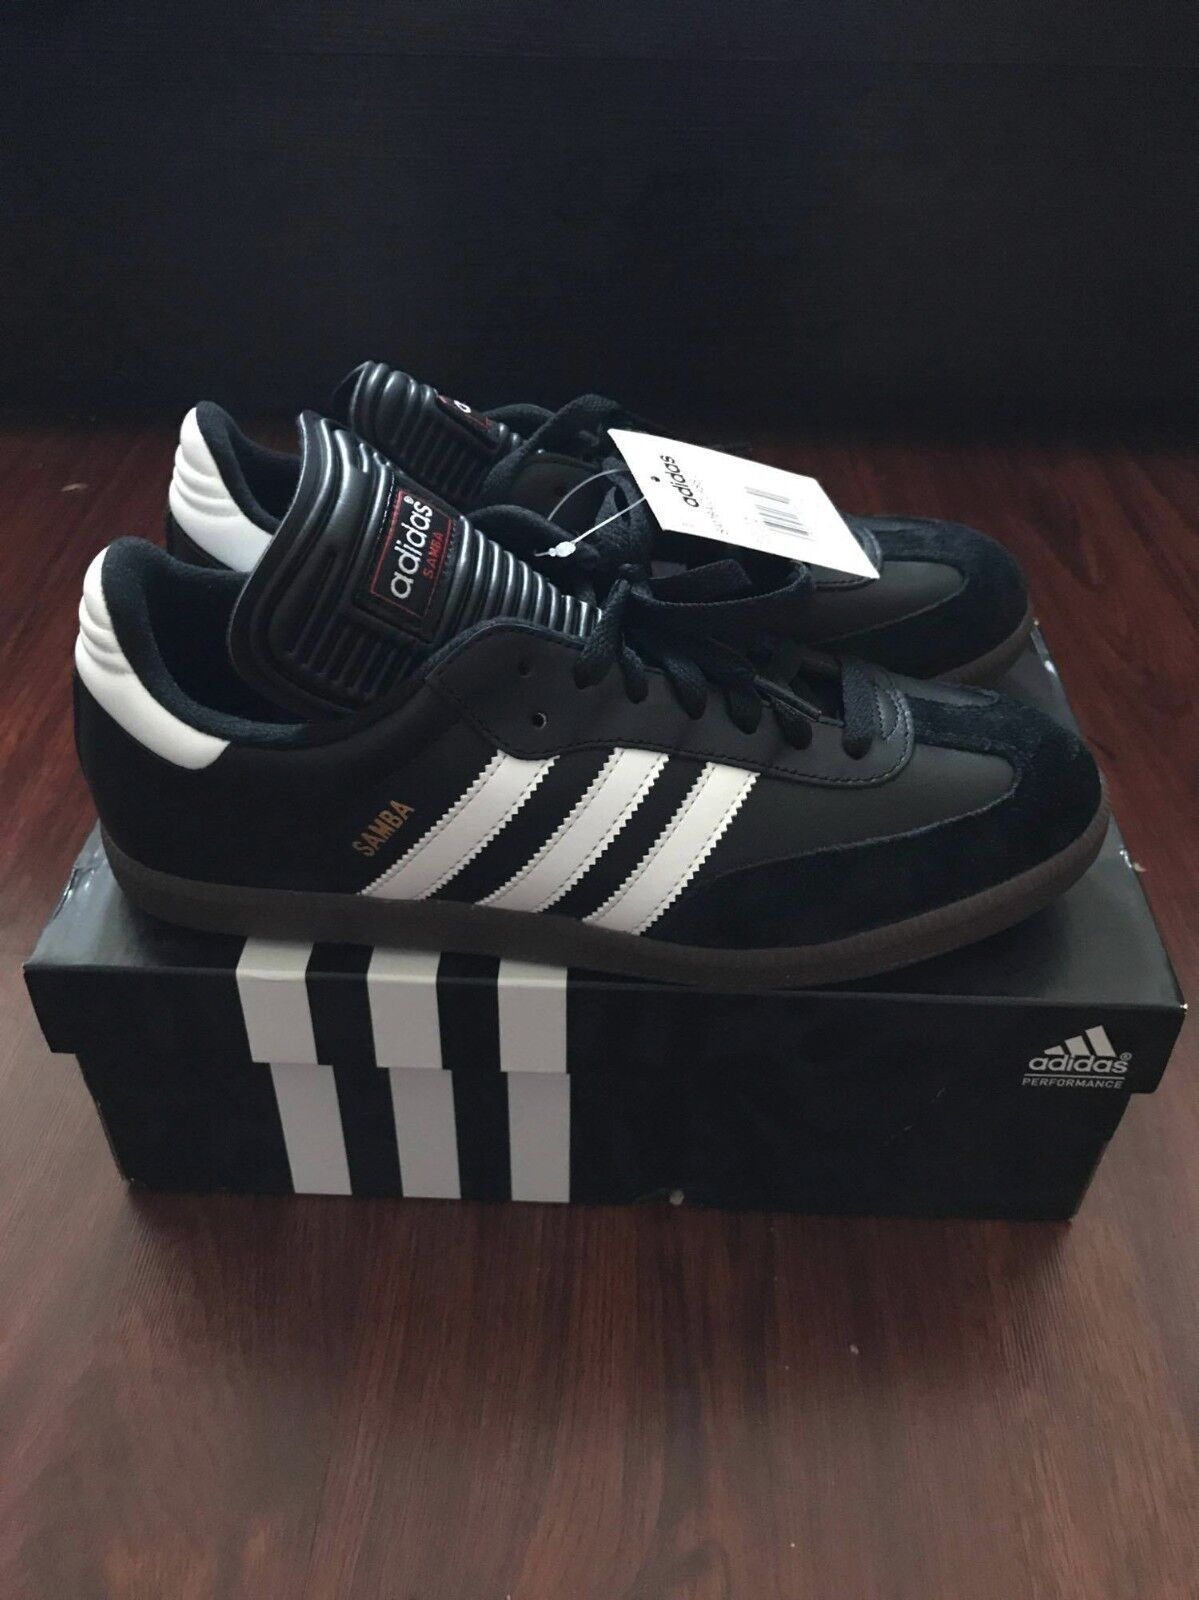 adidas Samba Men's Originals Black Trainers Black Originals cf6fa8